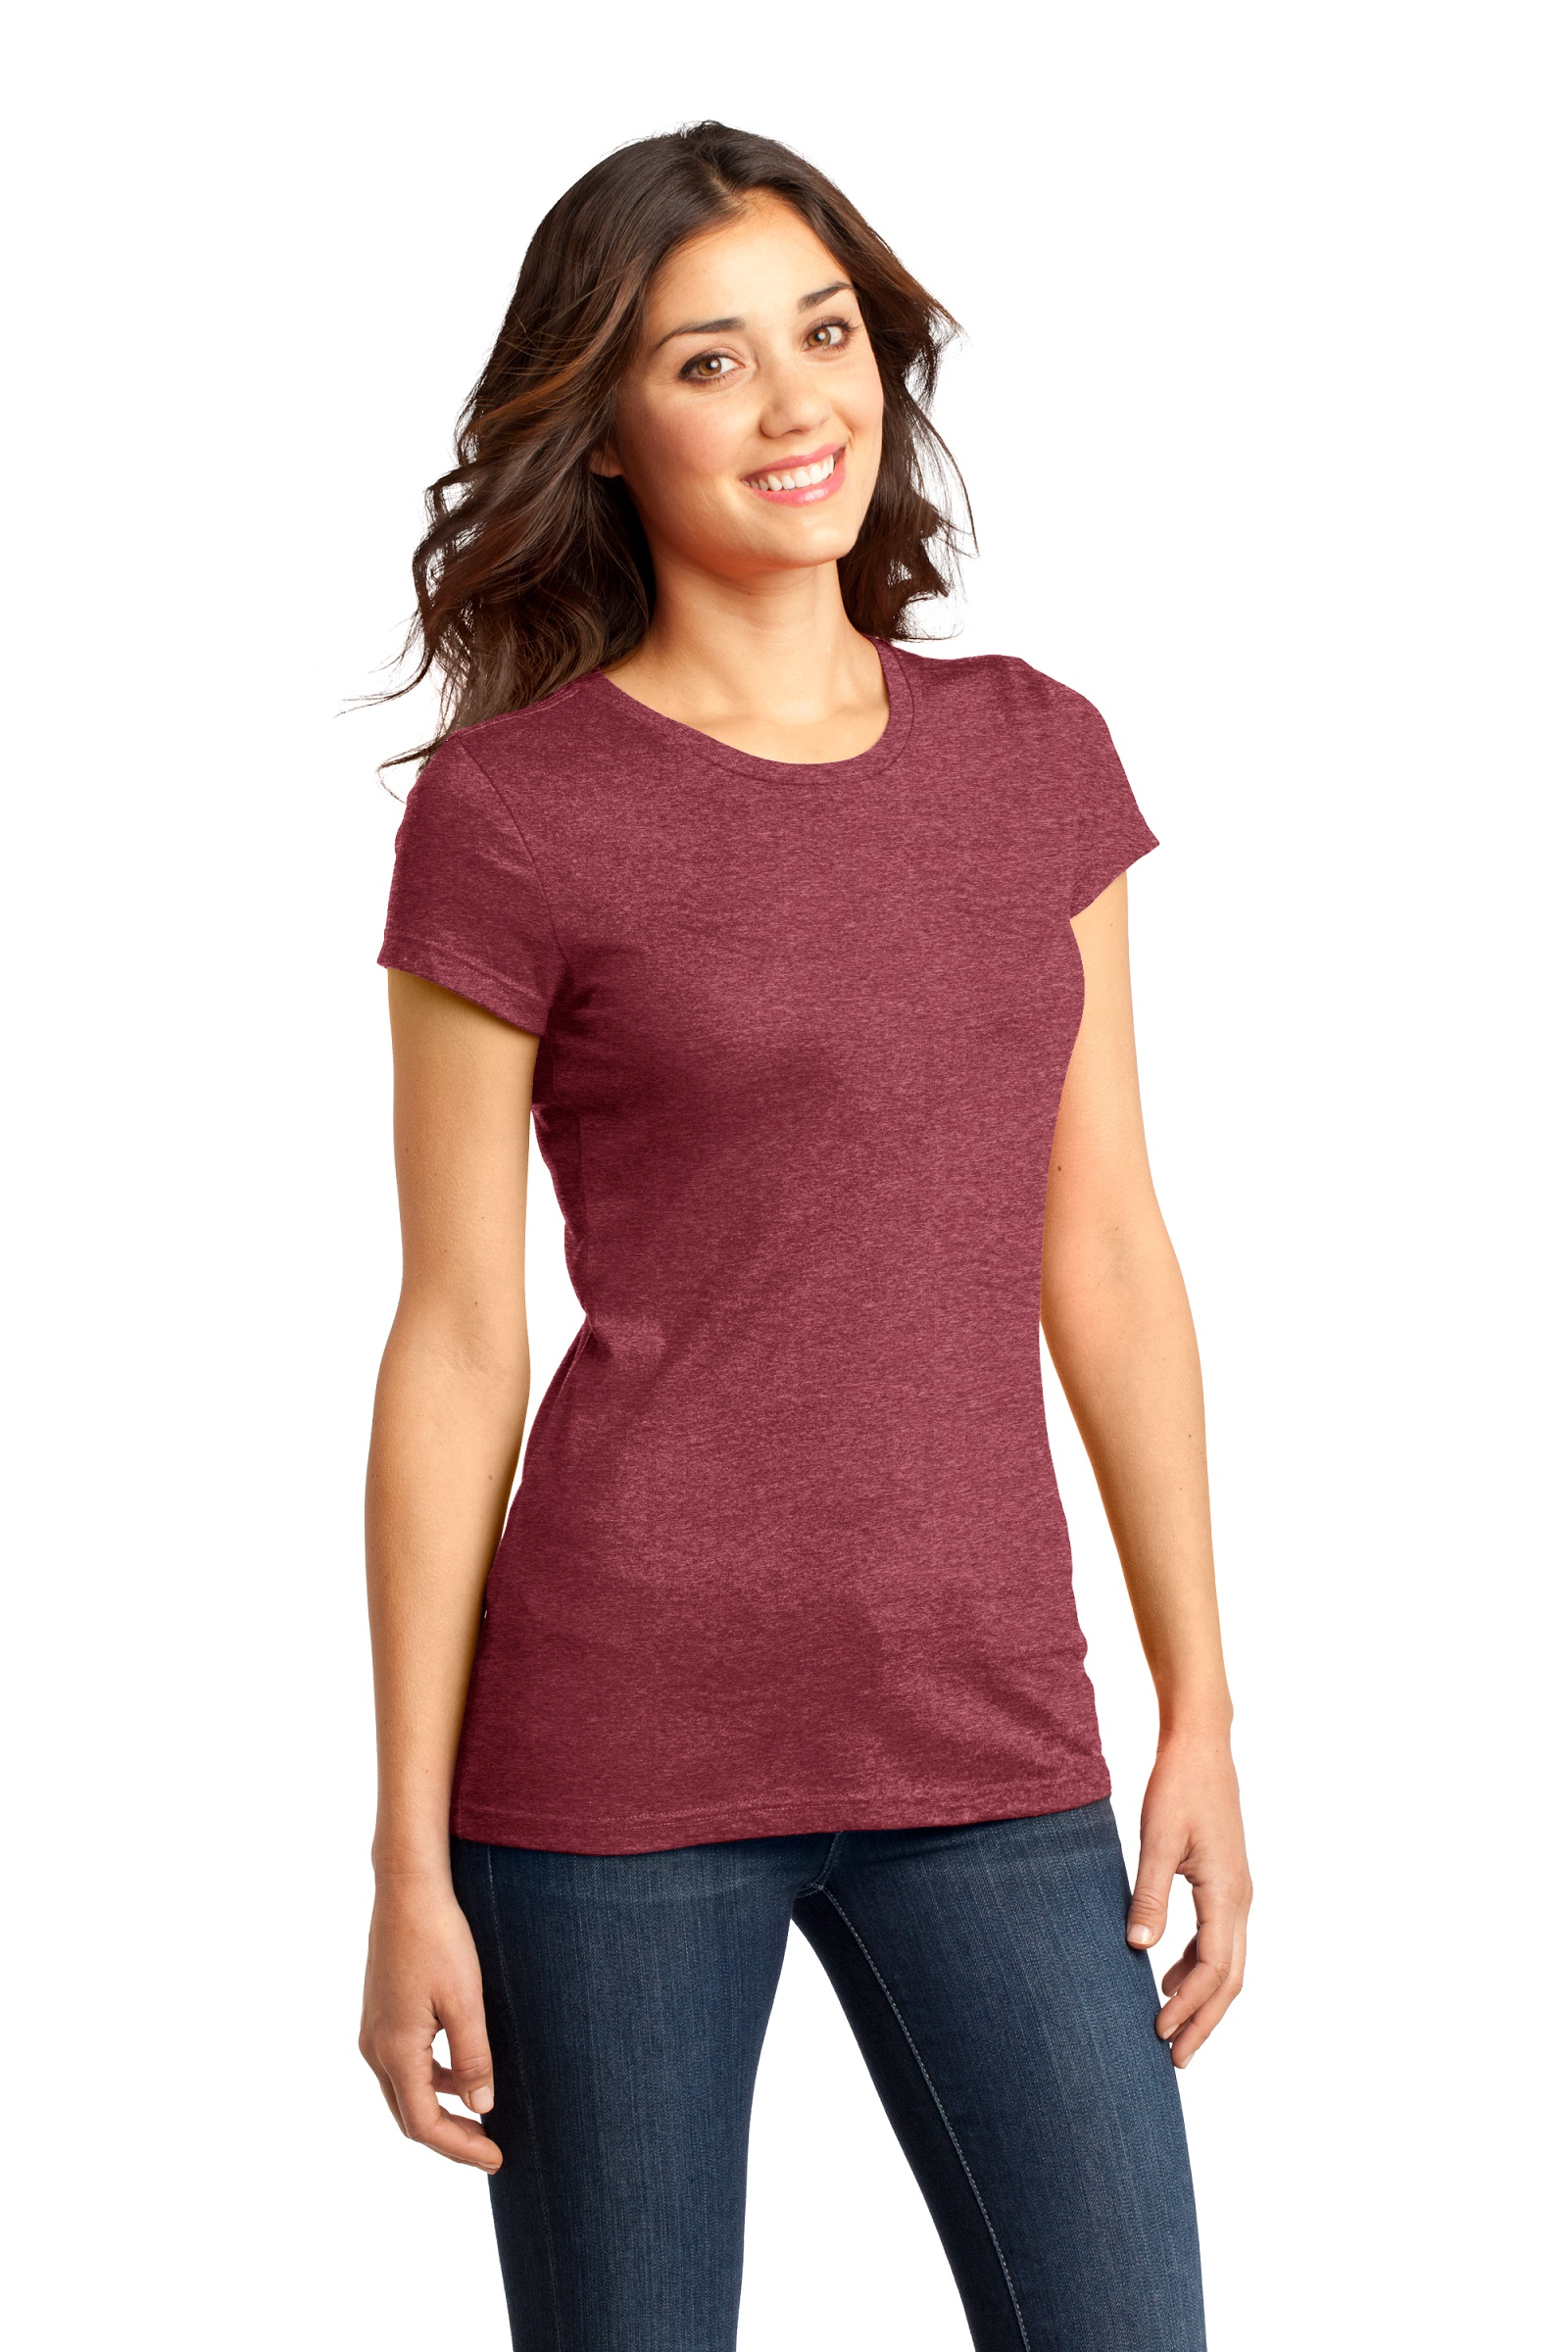 District Embroidered Women's Fitted Very Important Tee